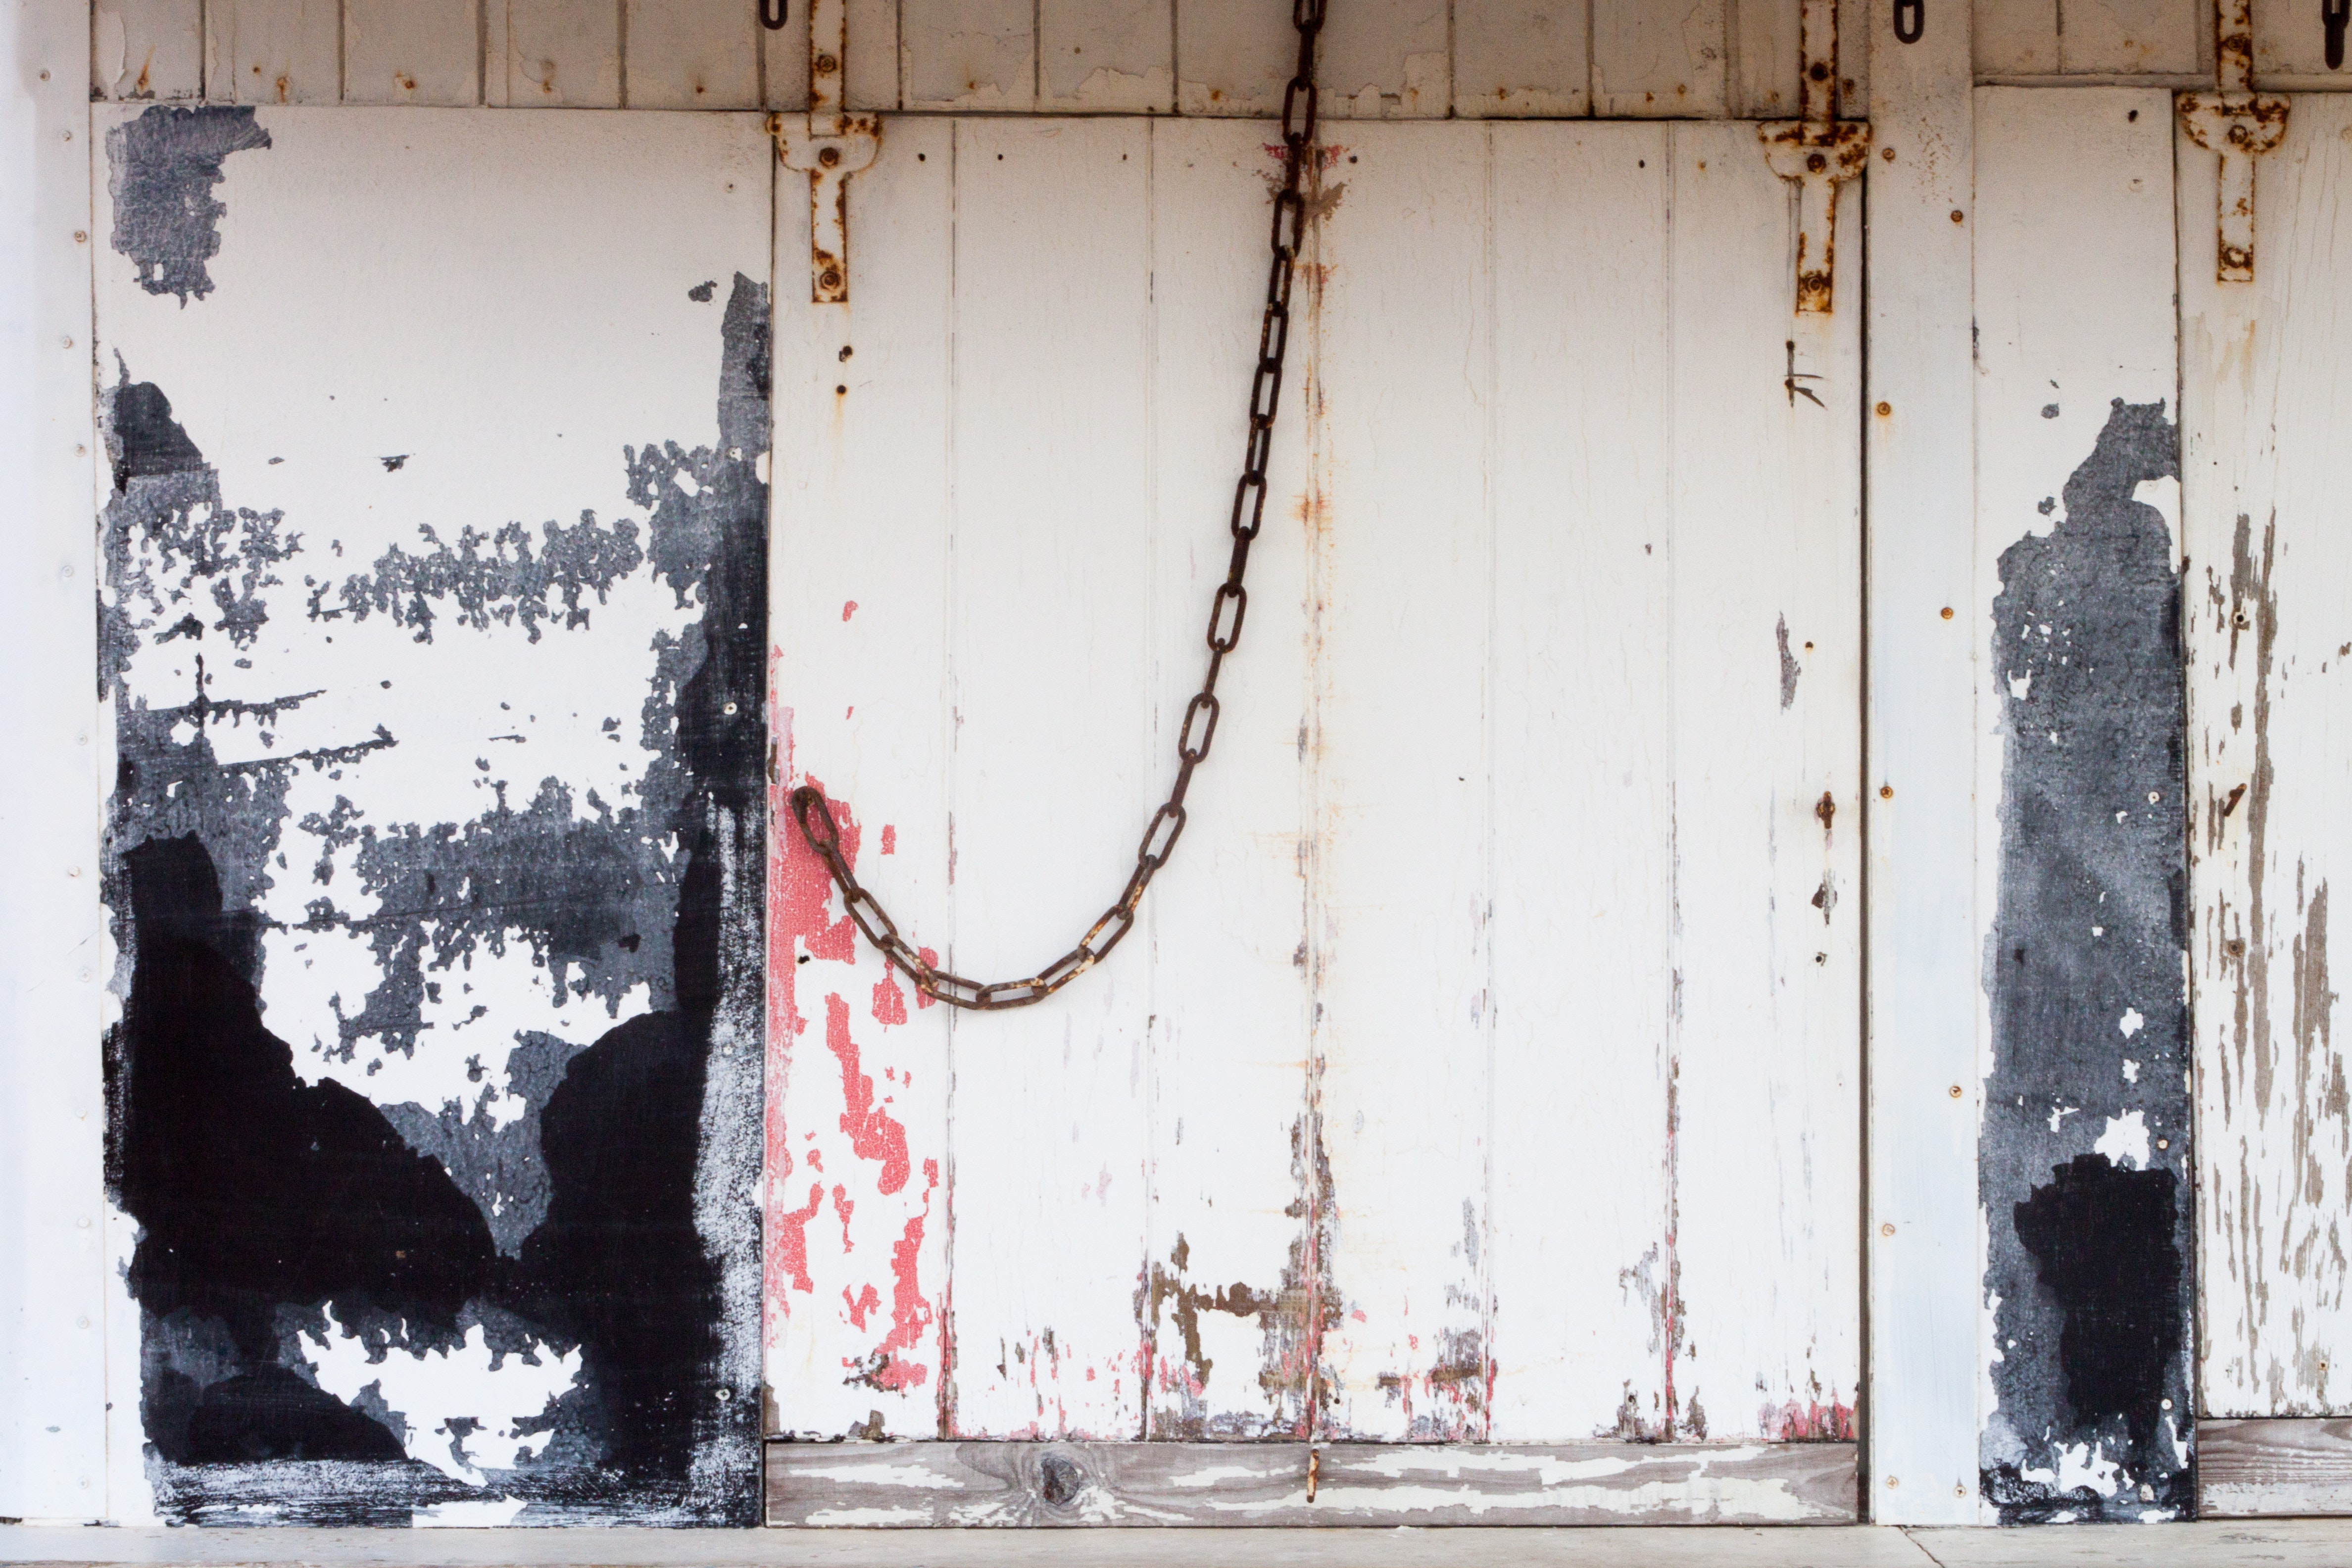 White Wooden Board, Chain, Door, Iron, Outdoors, HQ Photo